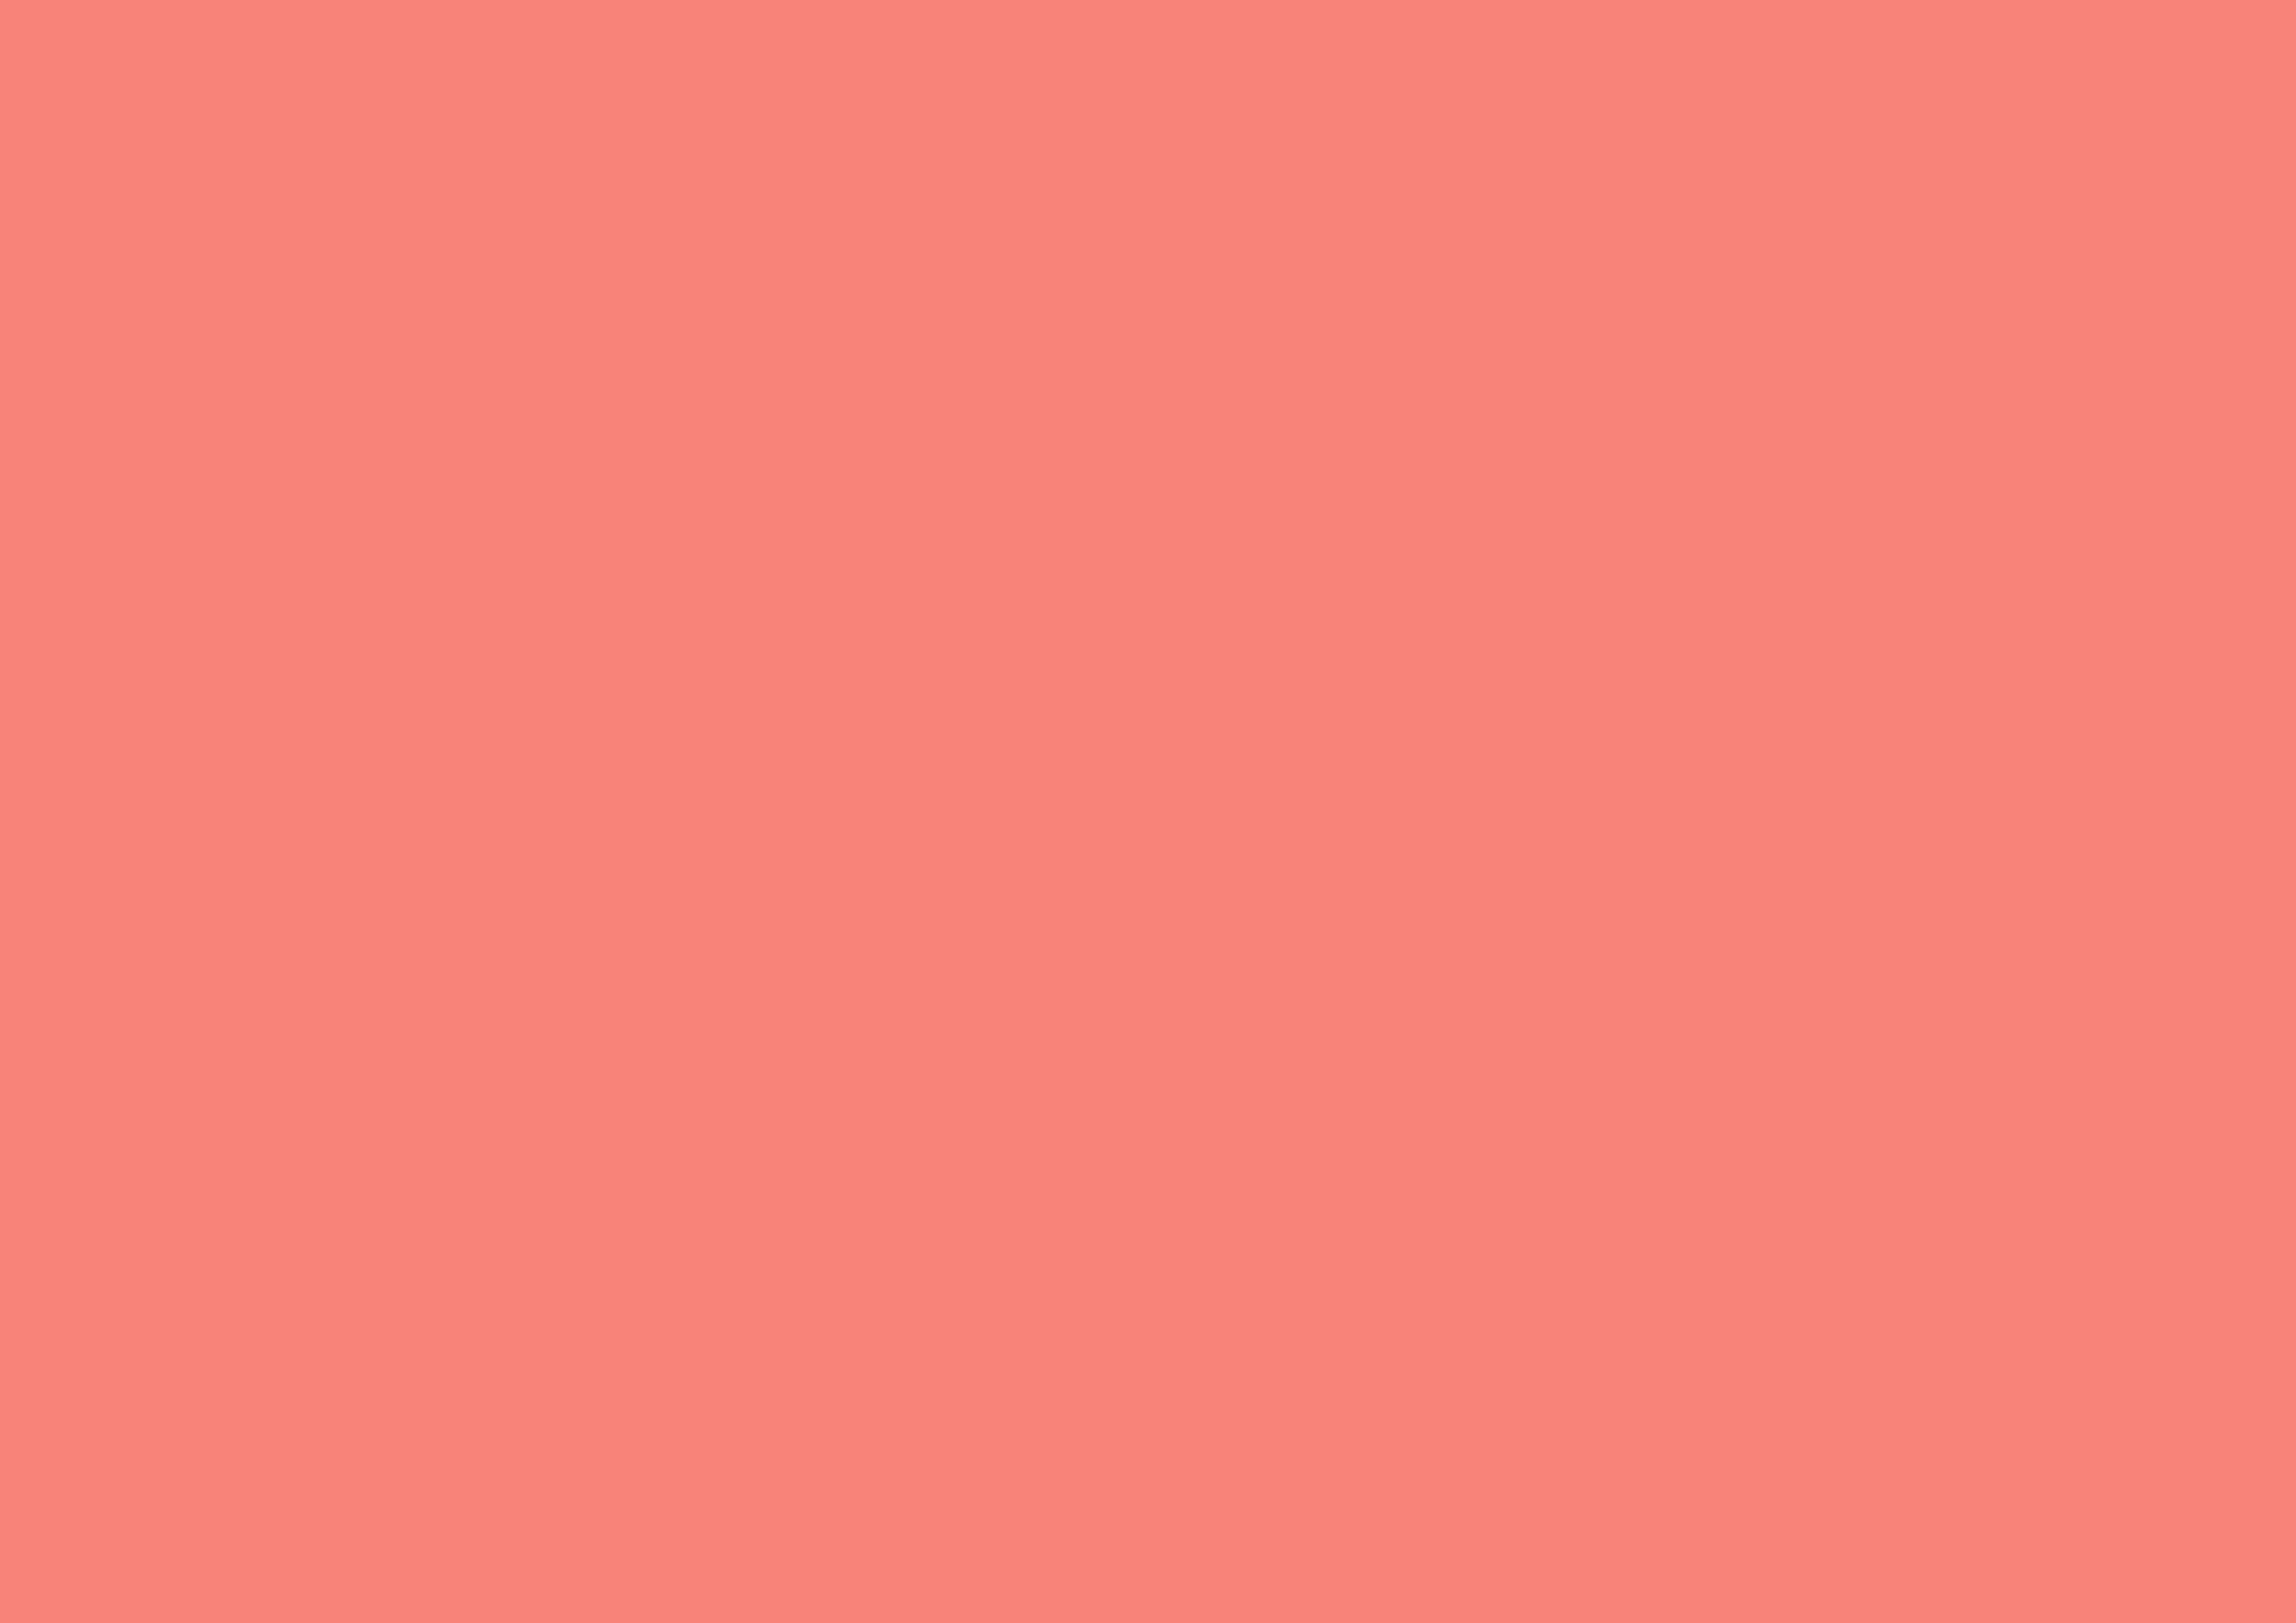 3508x2480 Coral Pink Solid Color Background